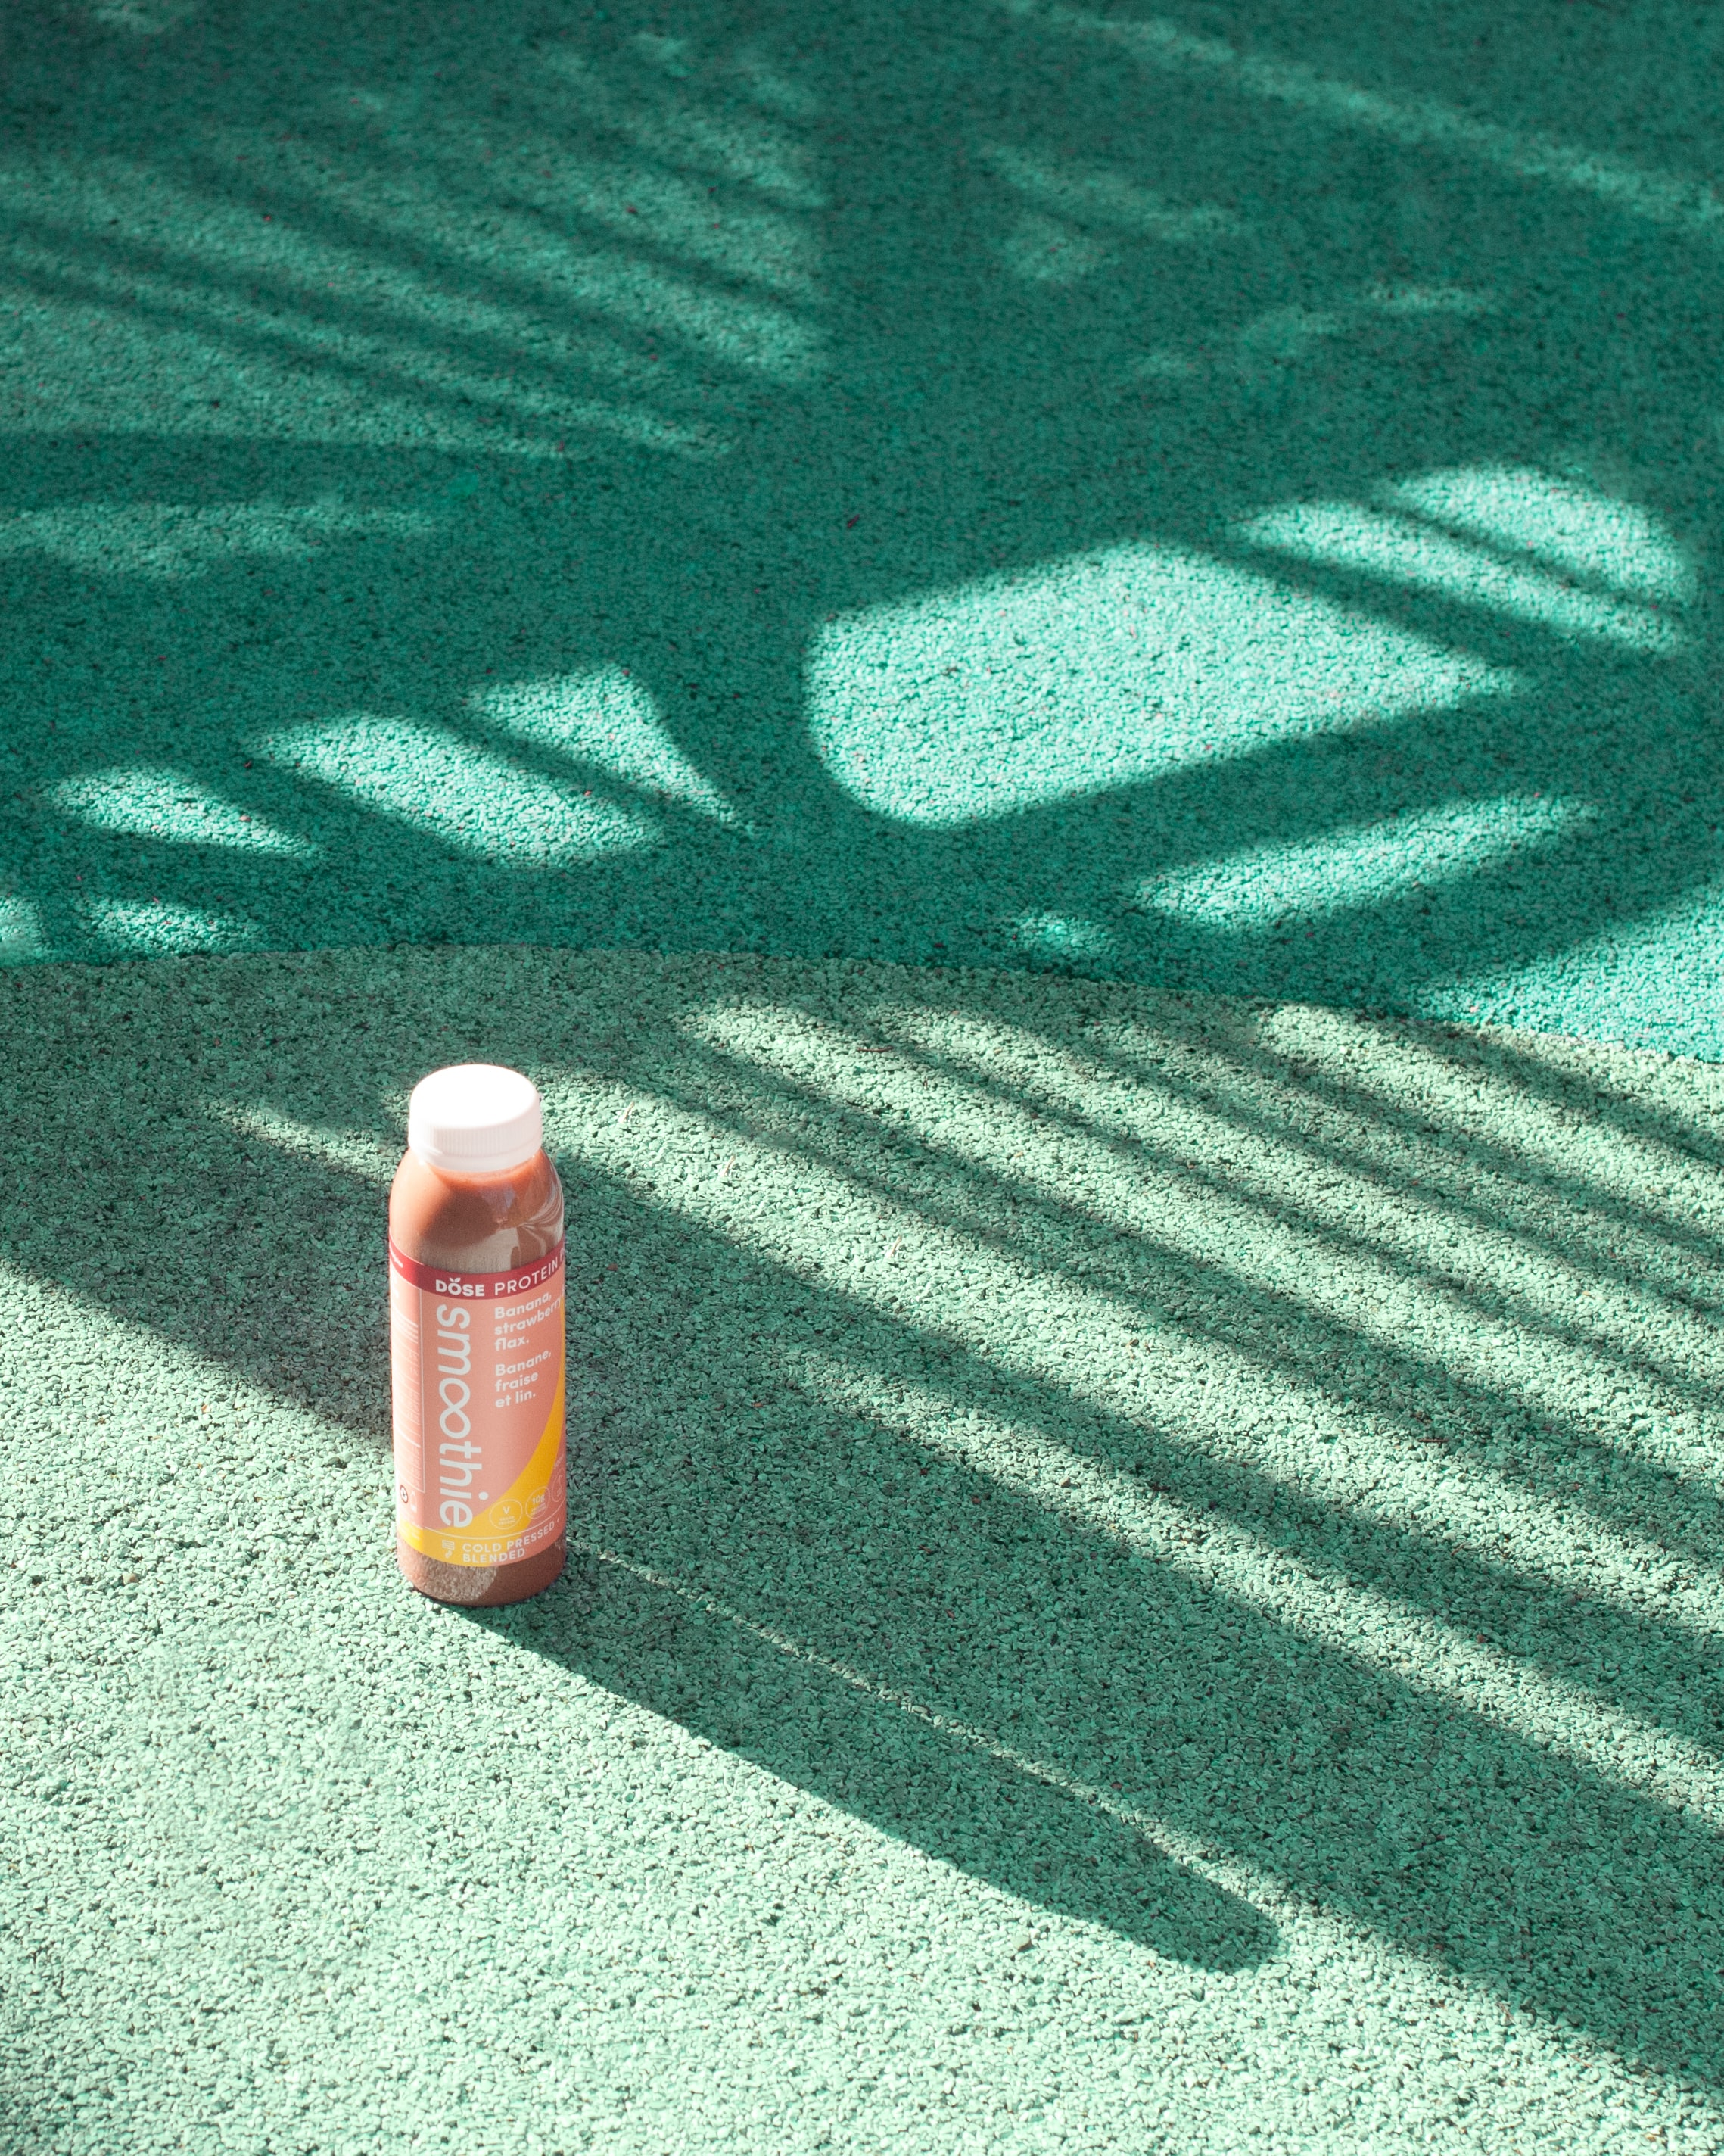 A bottle of DOSE Juice in the shadows